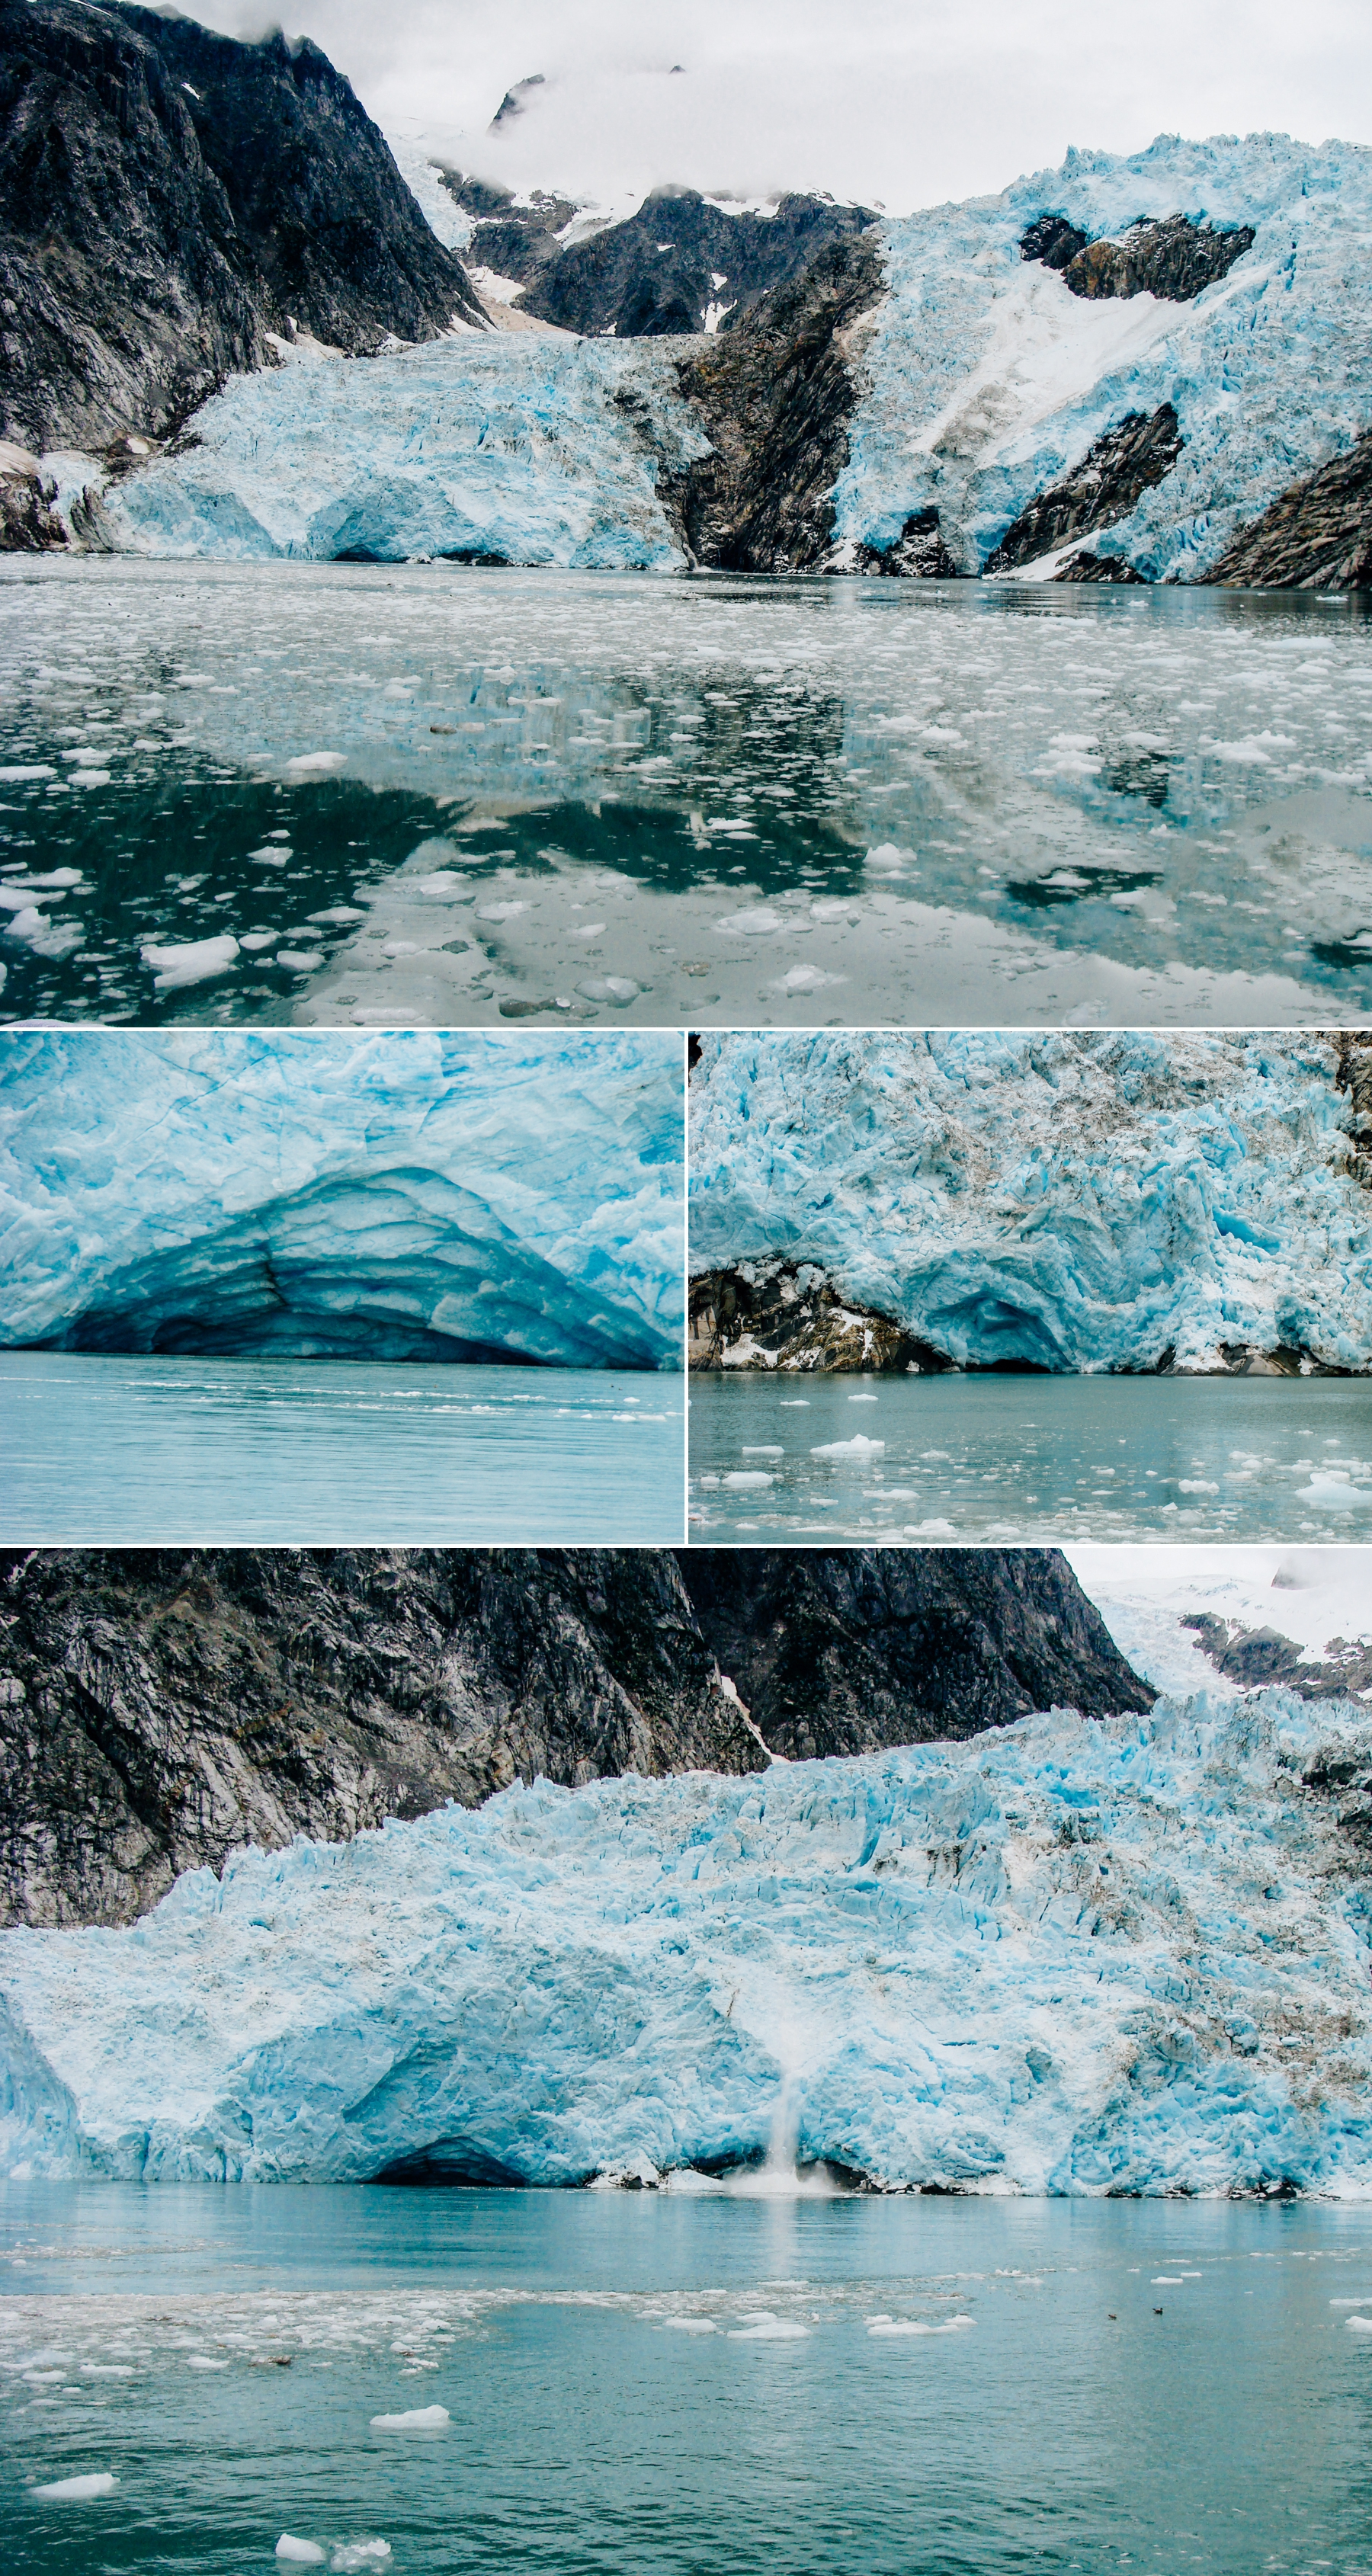 fjord glacier photos